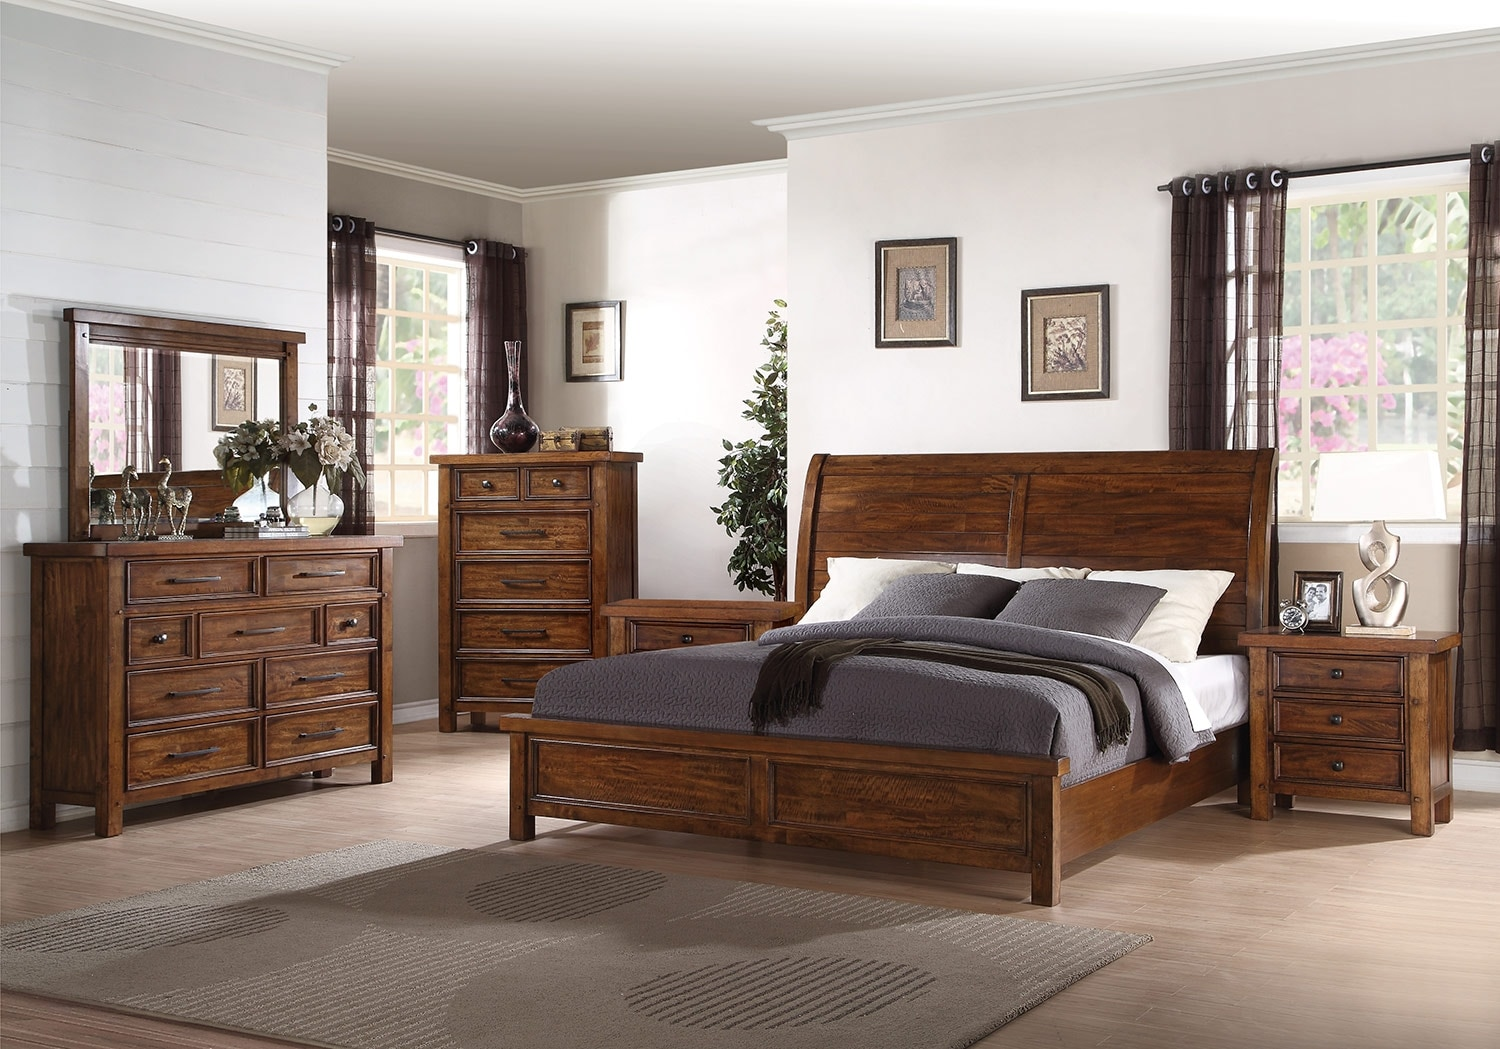 Bedroom Furniture - Sonoma 8-Piece Queen Bedroom Package – Medium Brown